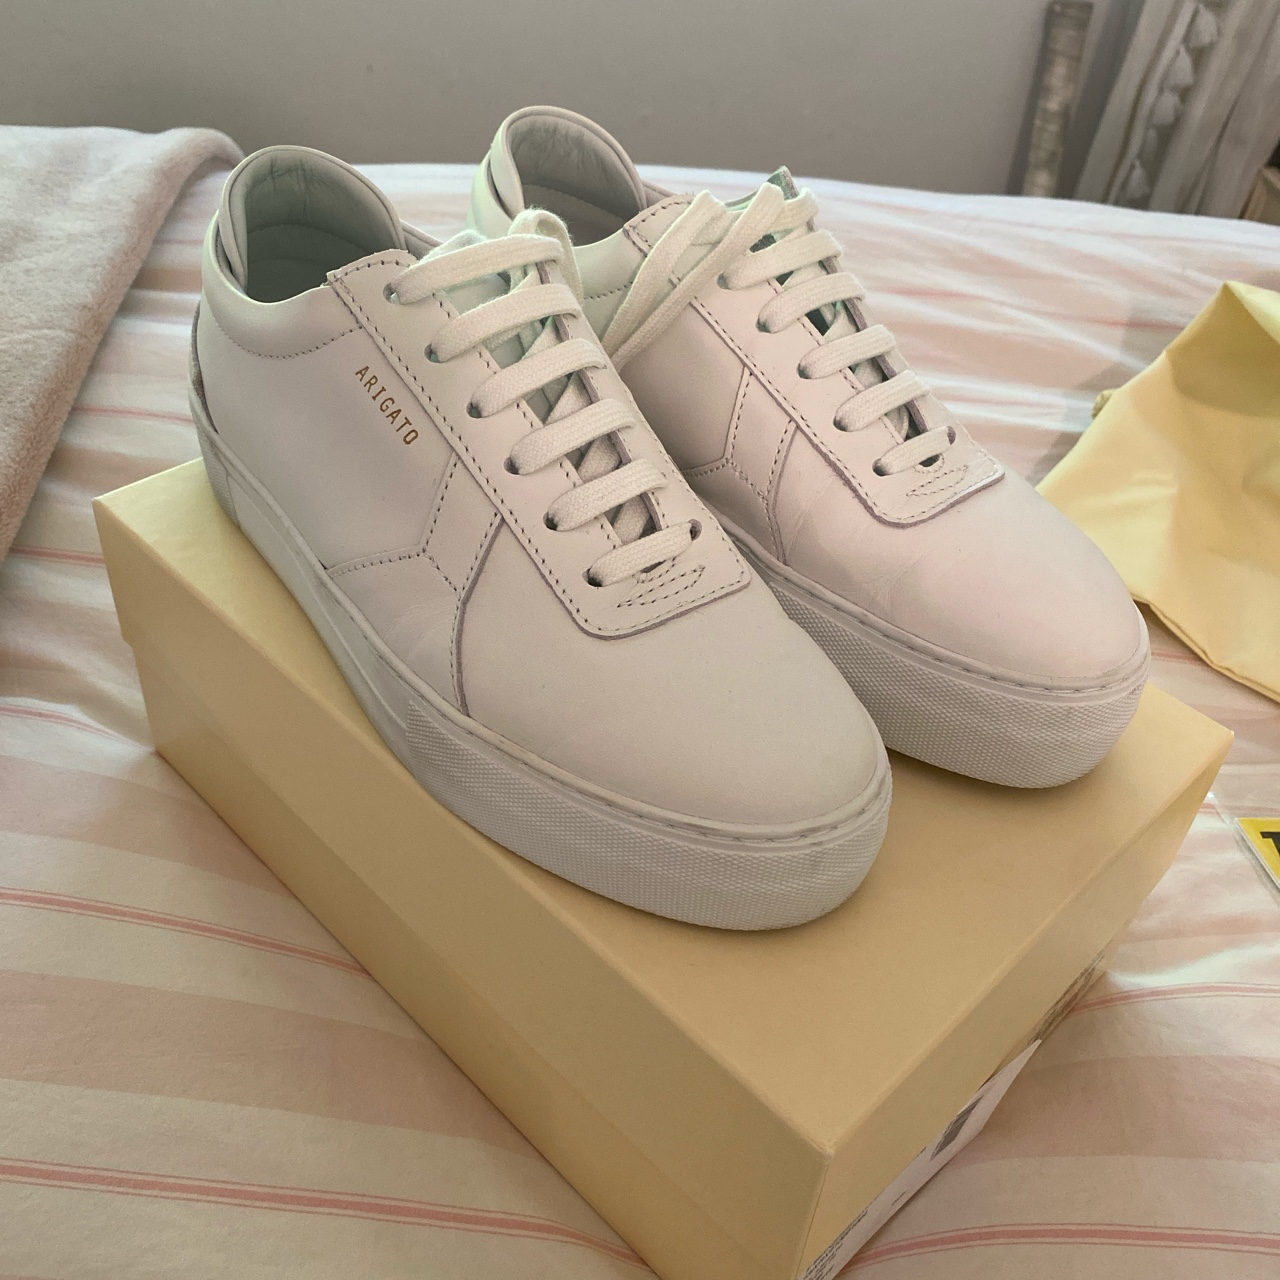 Product Image 1 - AXEL ARIGATO 30MM PLATFORM LEATHER SNEAKERS  Super